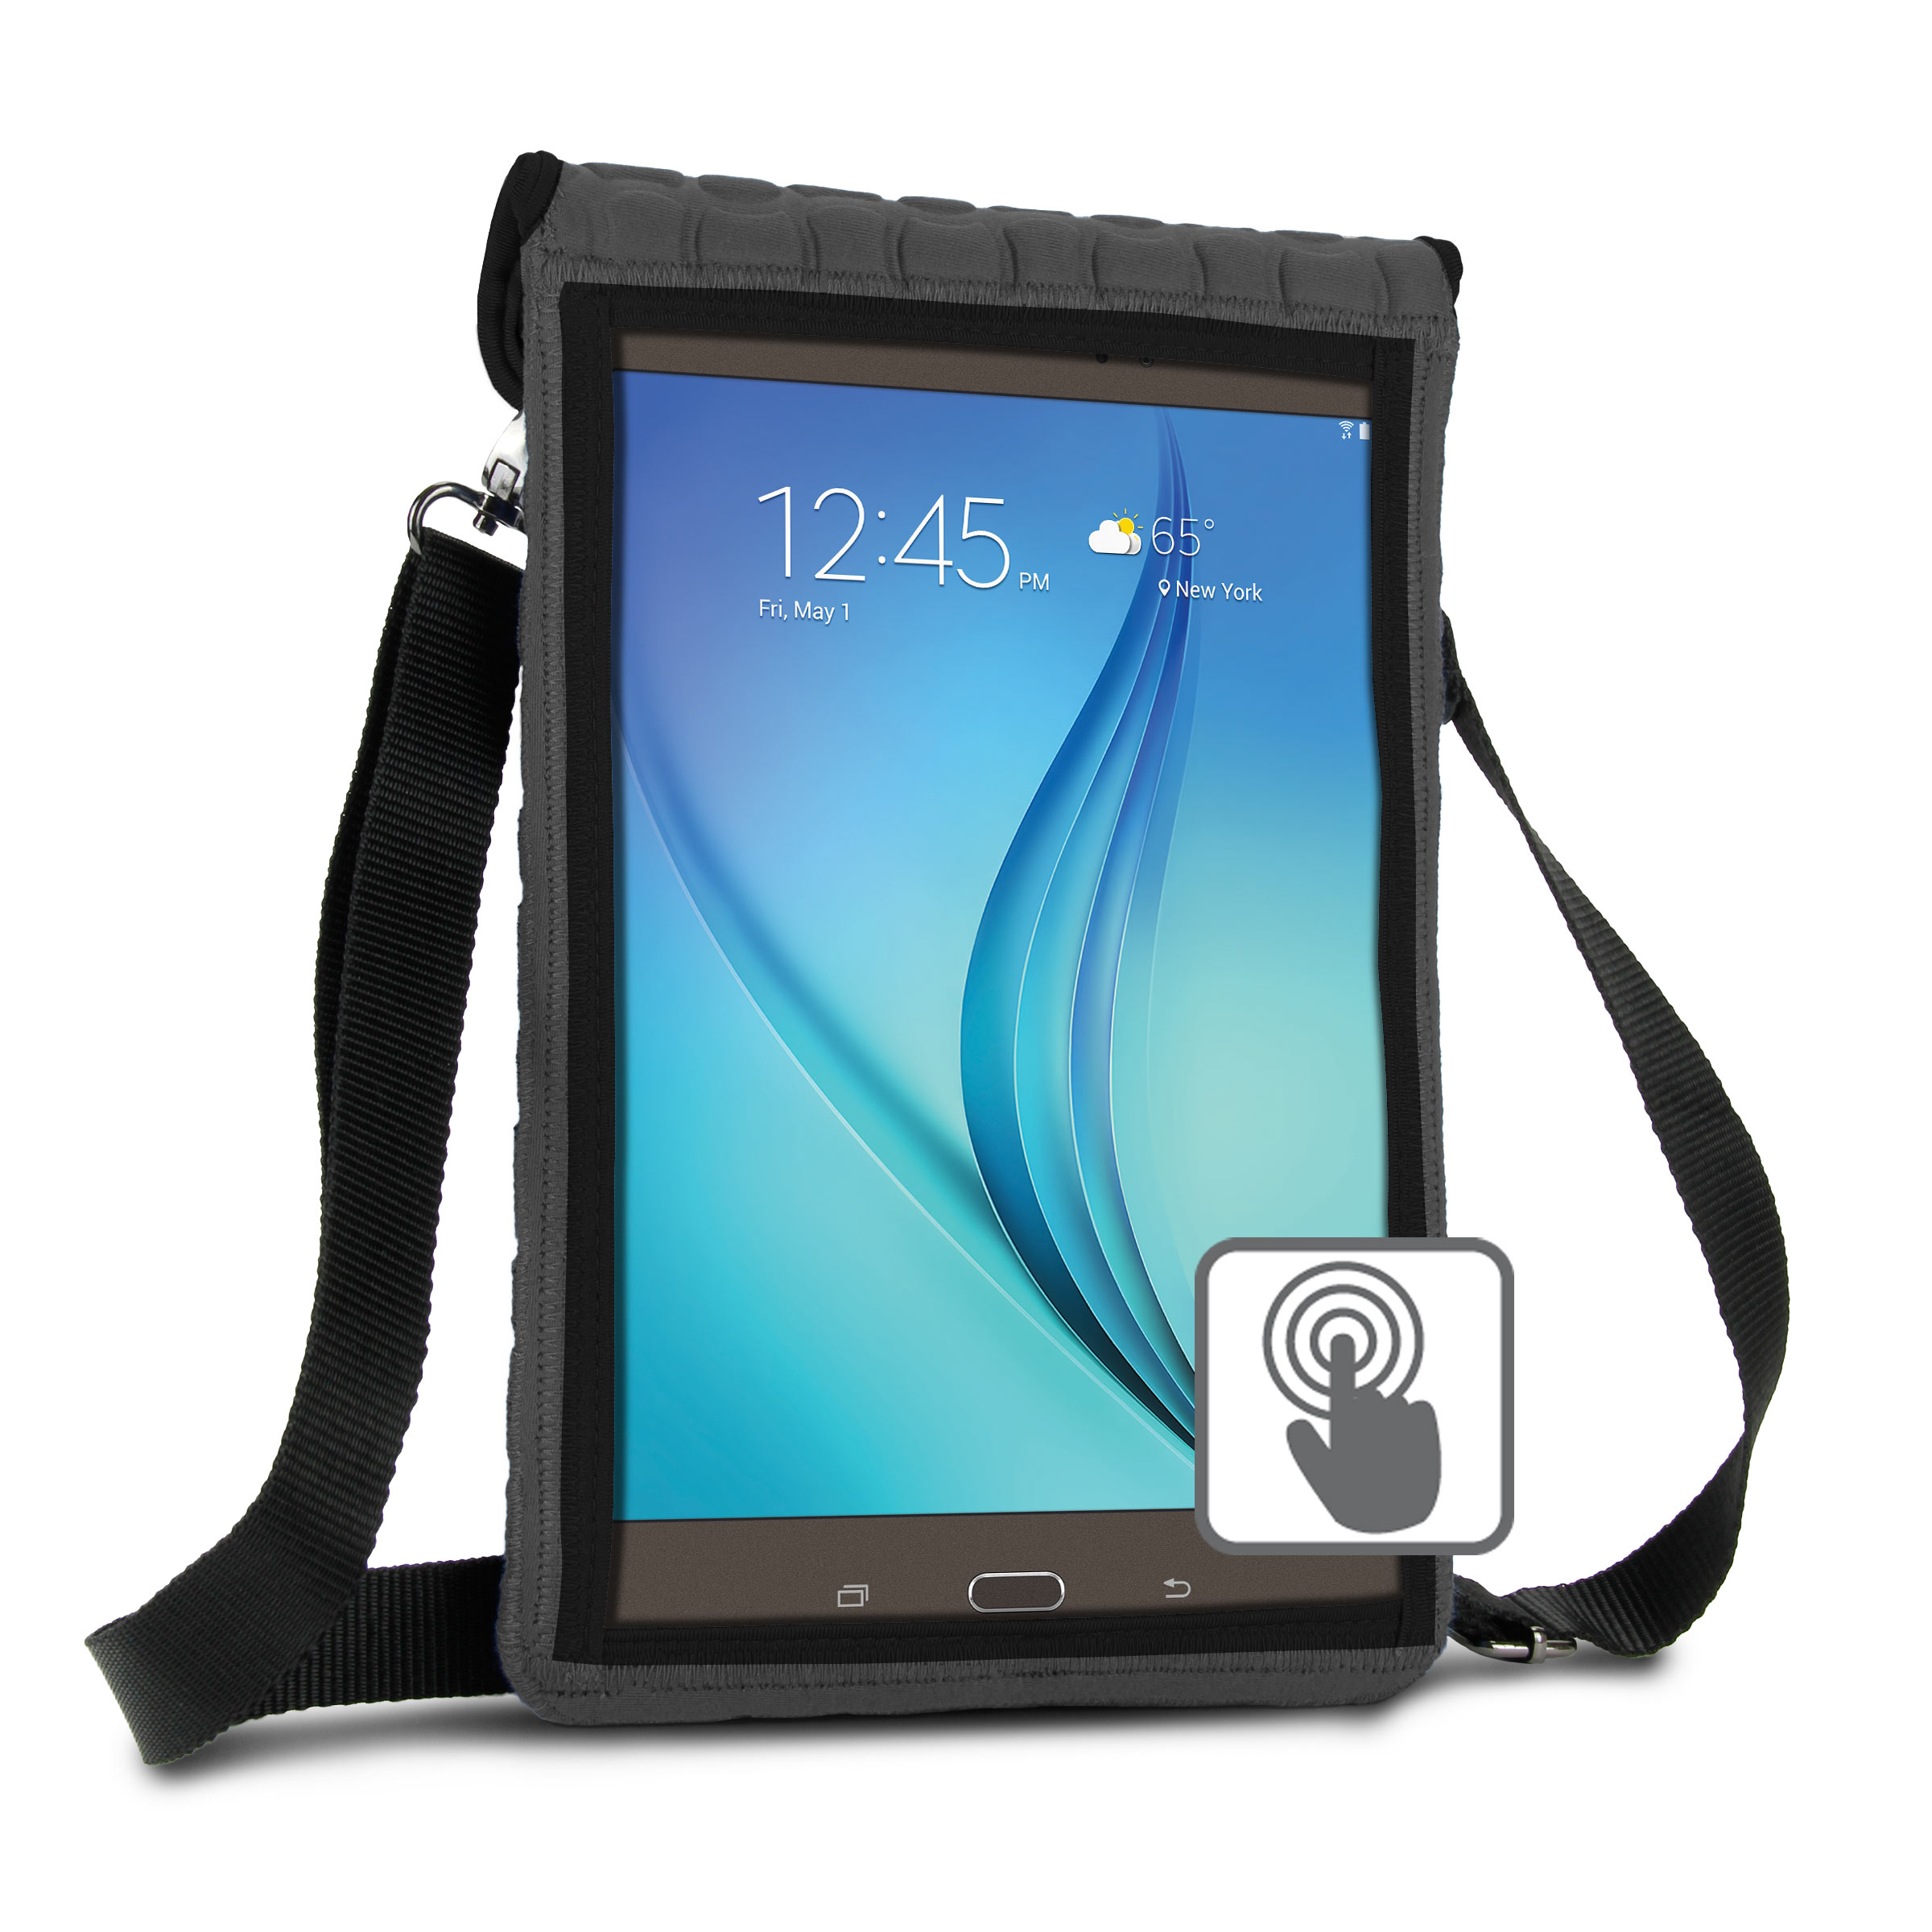 "10 Inch Tablet Case Holder Neoprene Sleeve Cover by USA Gear (Grey) Built-in Screen Protector & Carry Strap - Fits Samsung Galaxy Tab A 10.1, Insignia FLEX 10.1, Acer ICONIA ONE 10, more 10"" Tablets"